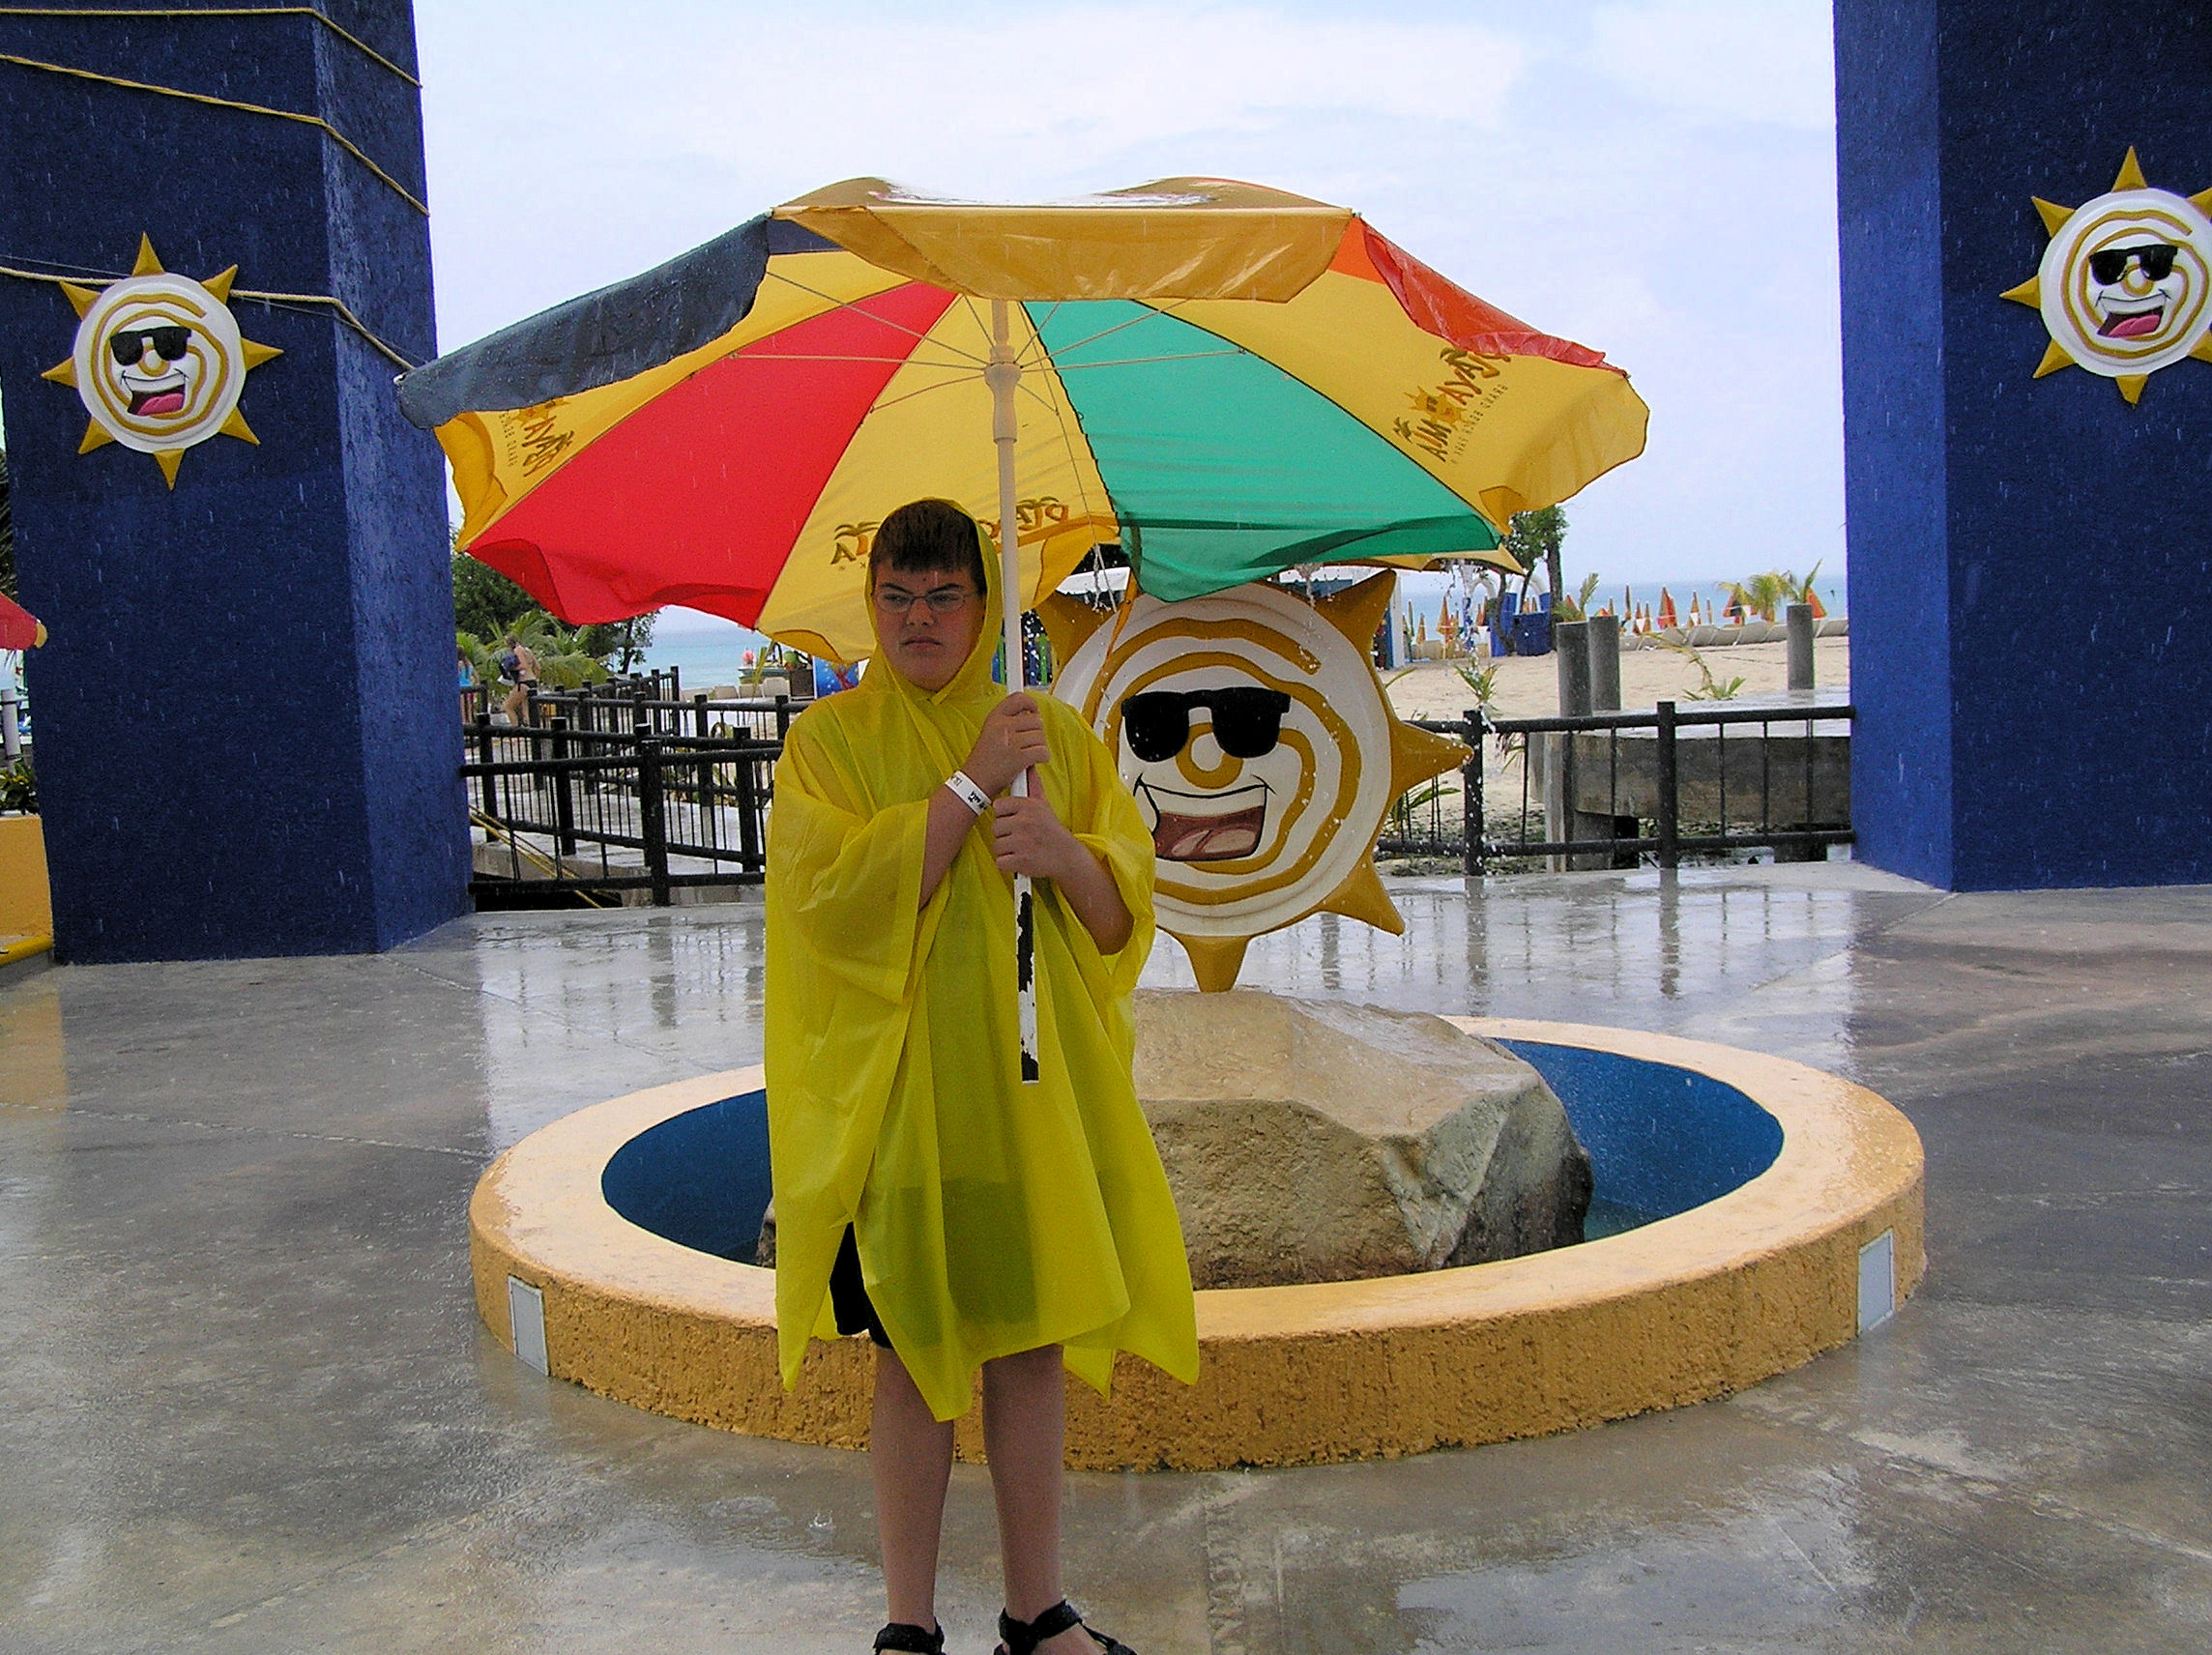 Me at Playa del Sol (Beach of the Sun), while on a Disney Cruise Line shore excursion (Cozumel, Mexico).